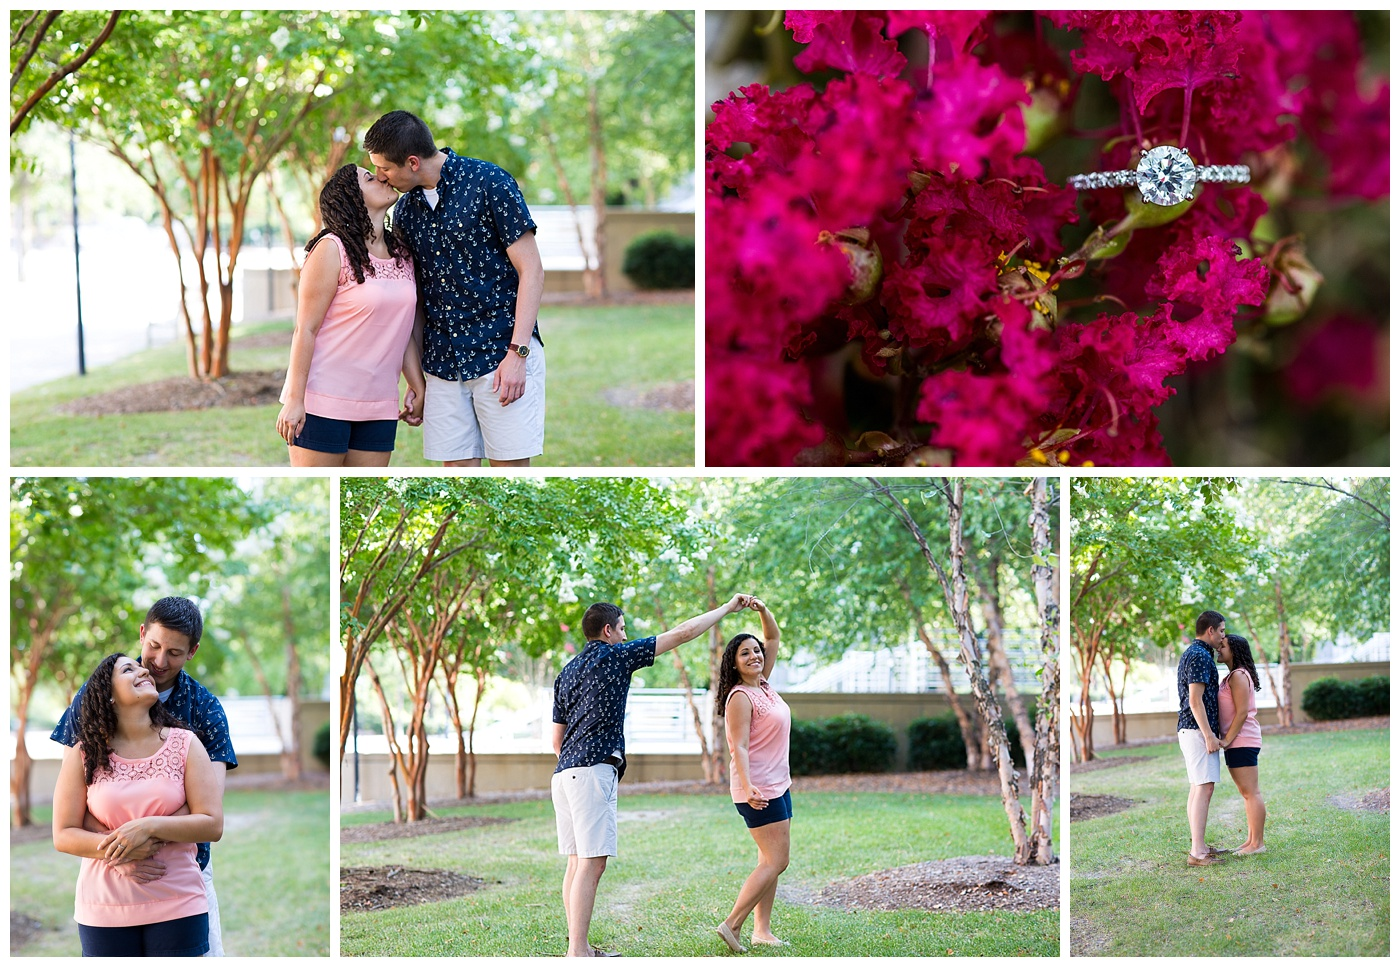 Sarah & Nick are Engaged!  Thanks for showing me around ODU!!